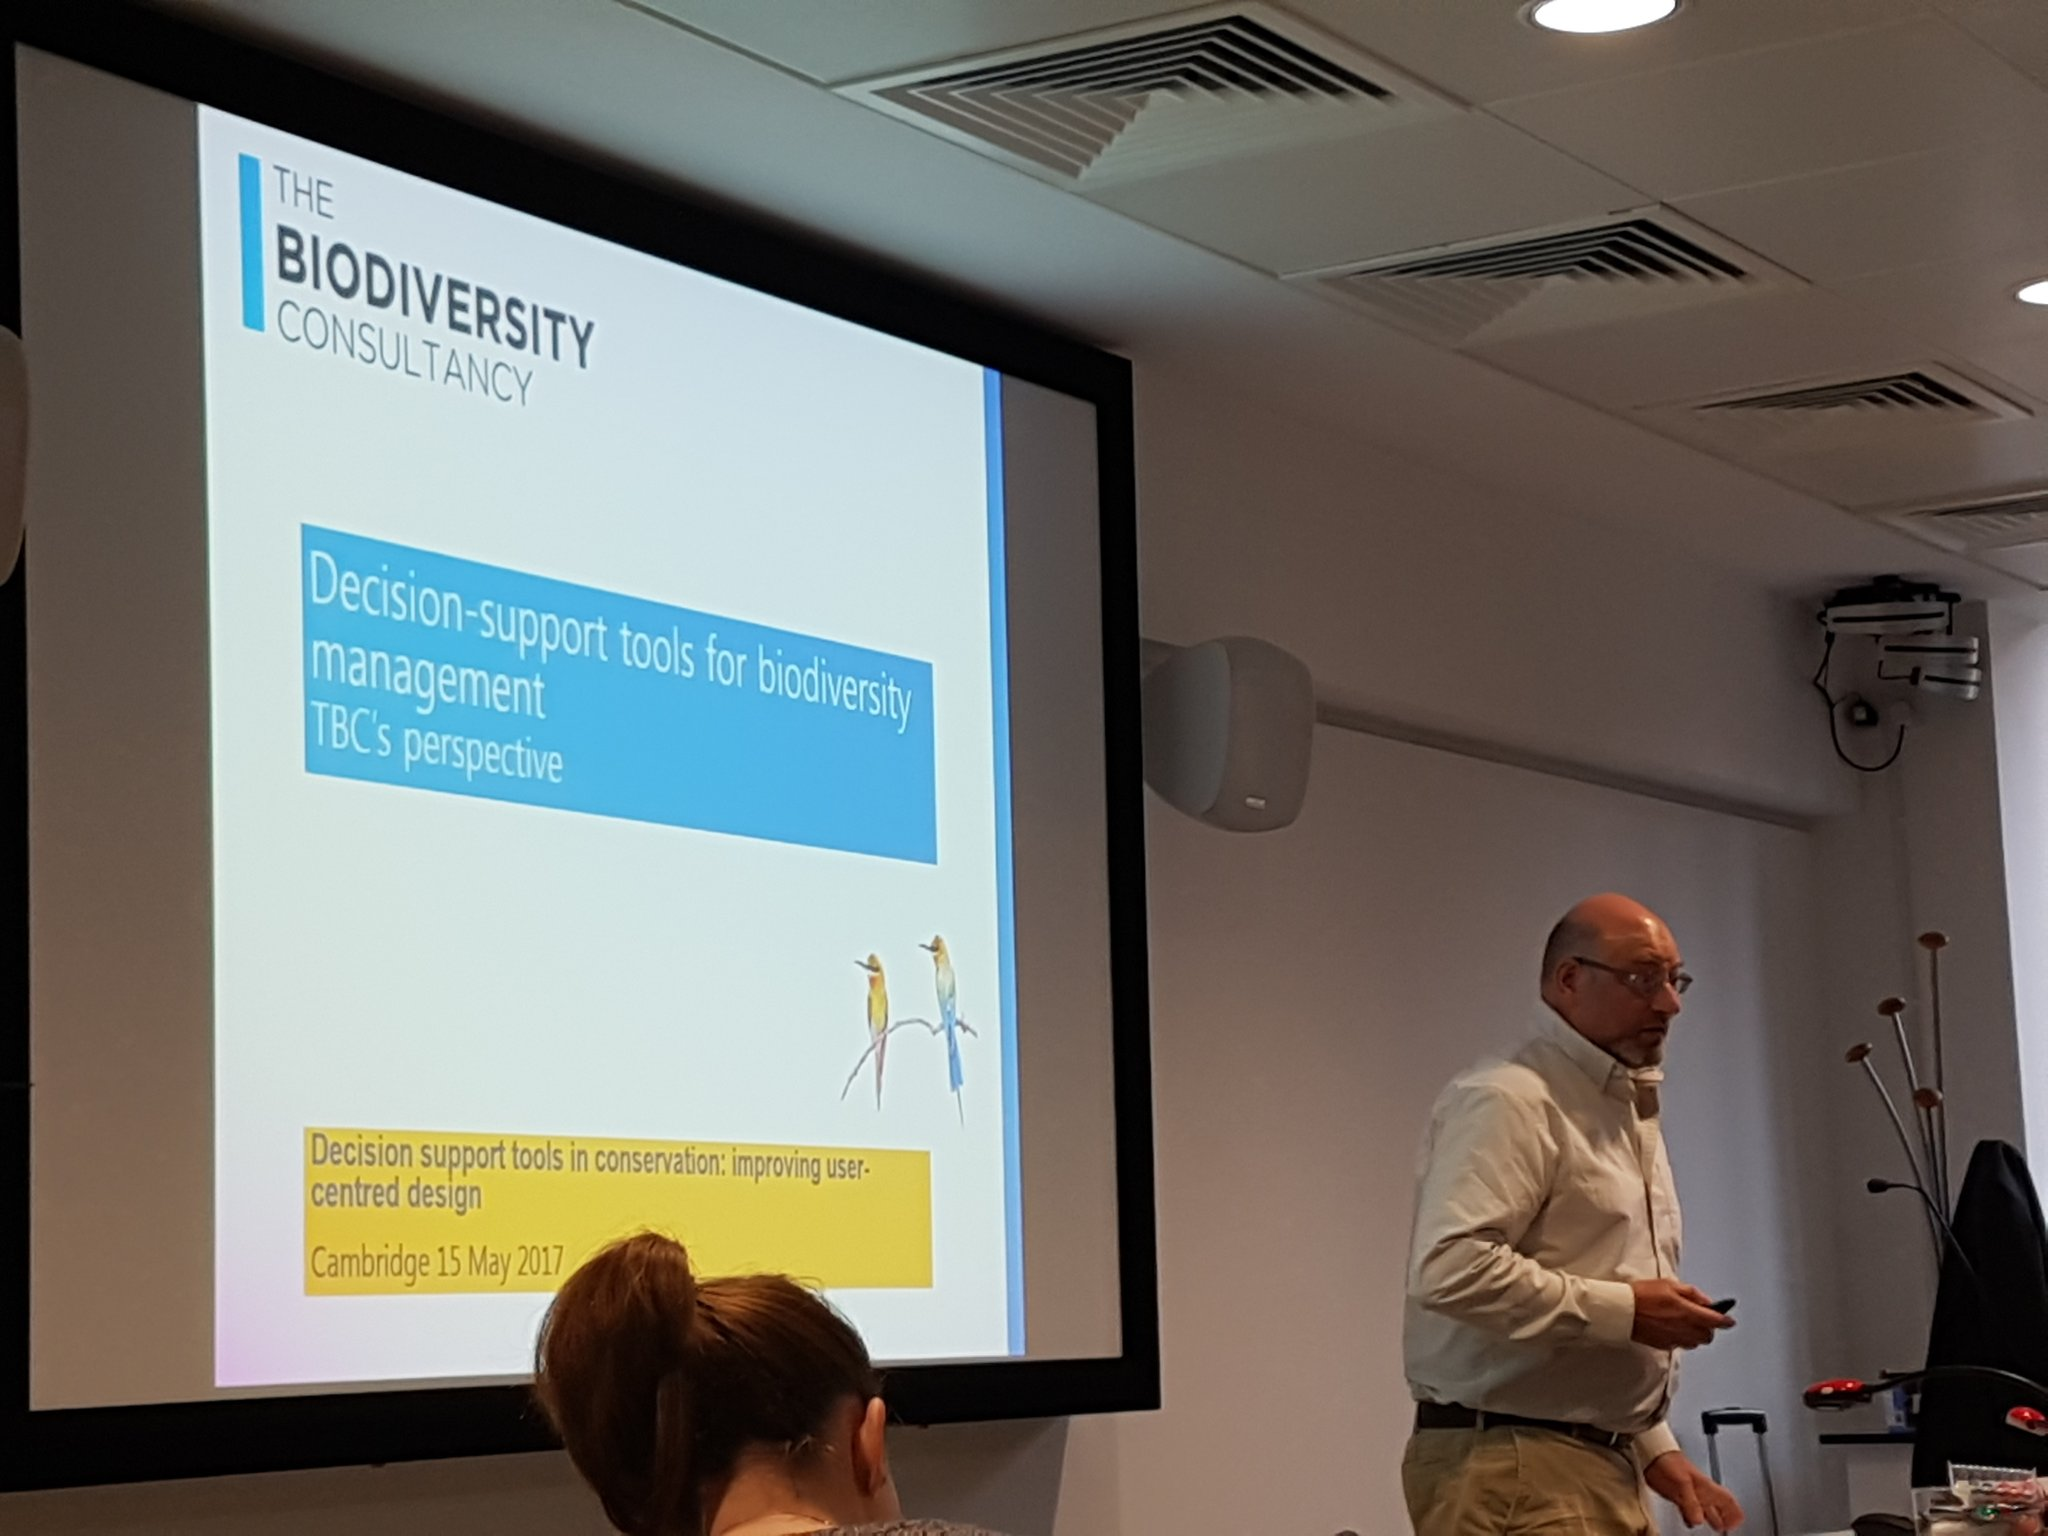 How do practitioners use support tools in decision making? We're hearing from The Biodiversity Consultancy now #ConservationDecisions https://t.co/oJJPILP8i5